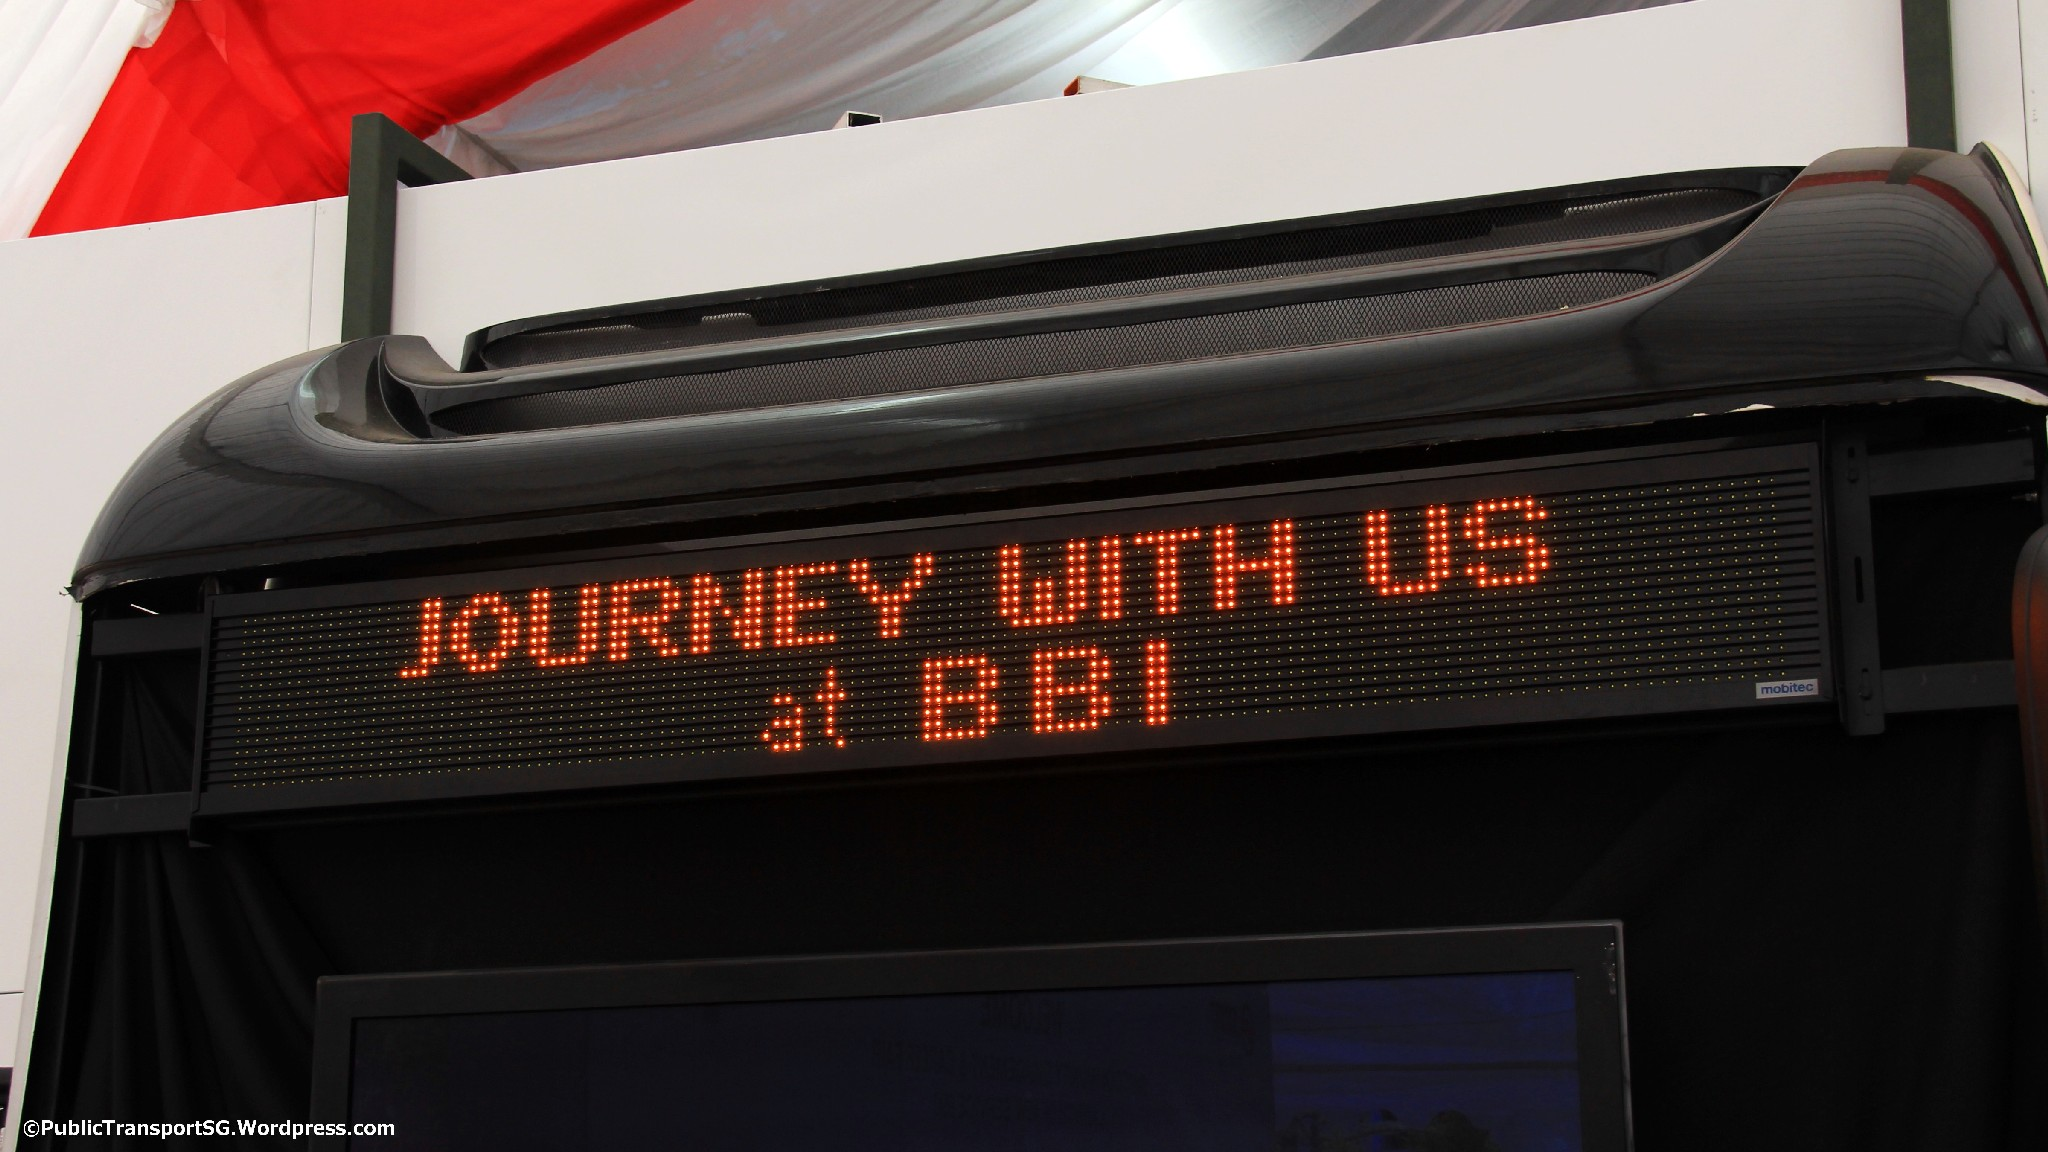 Welcome message programmed on a Mobitec Electronic Display Signage (EDS)